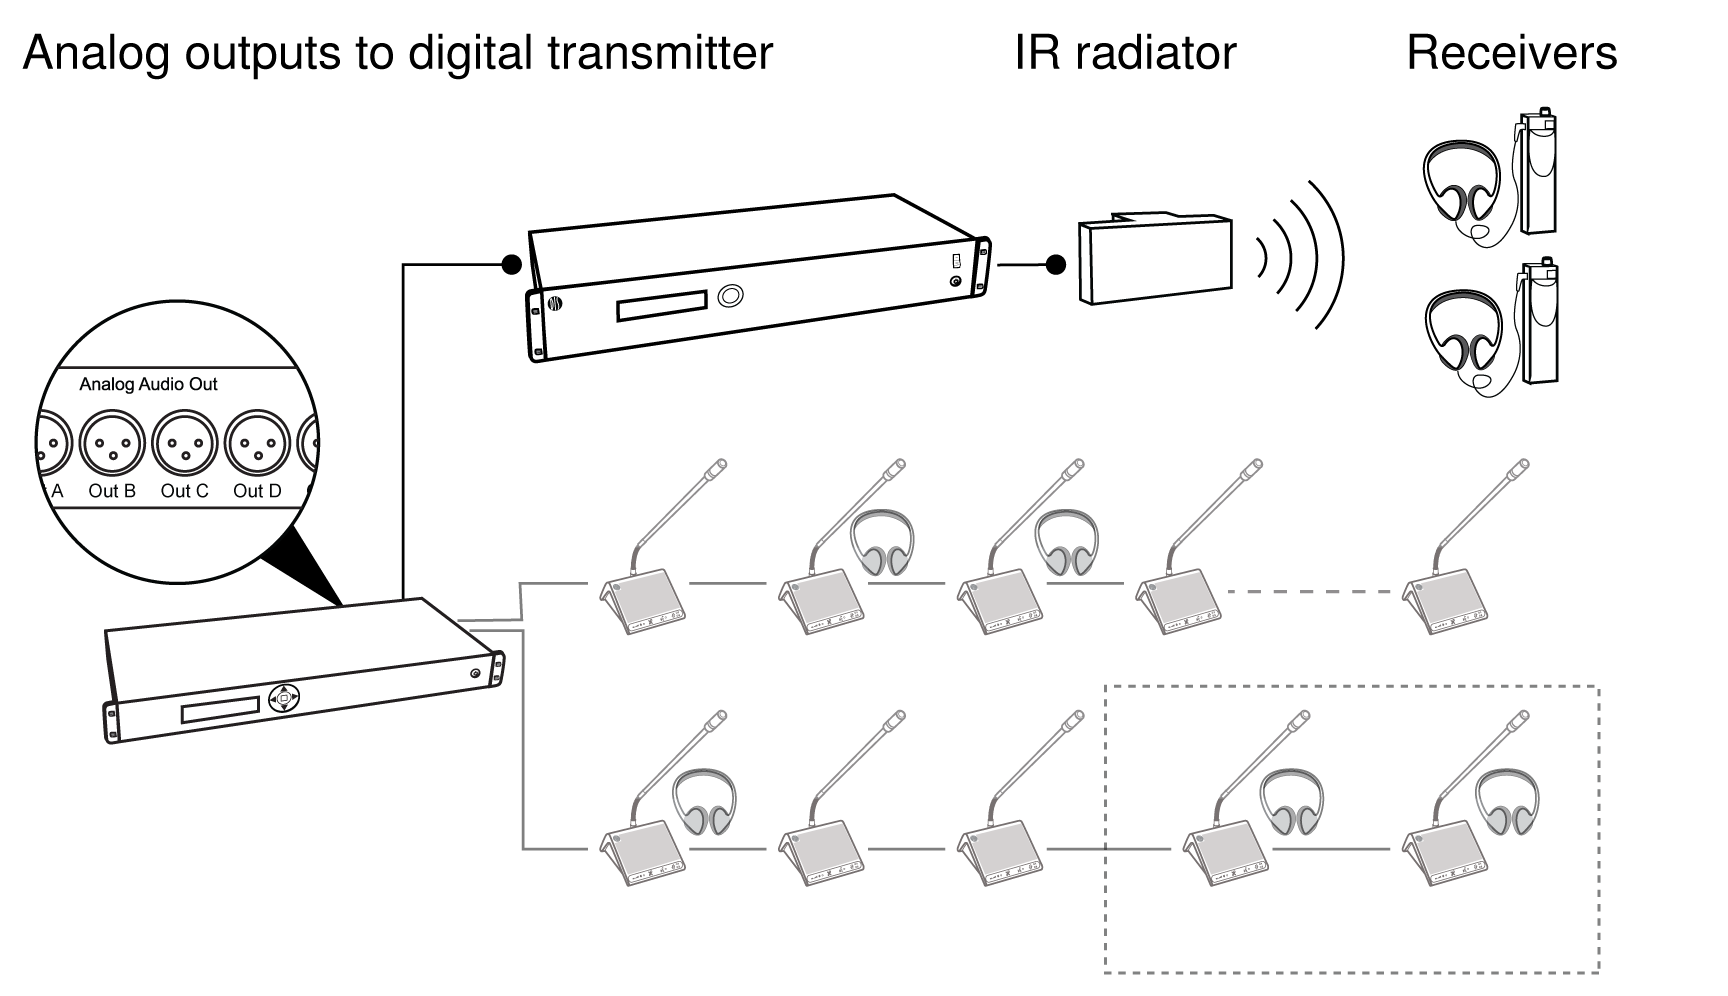 Shure Publications User Guides Dds 5900 Diagram D Audio For 410 Rooms Using A Second Stereo Receiver Wireless Language Distribution